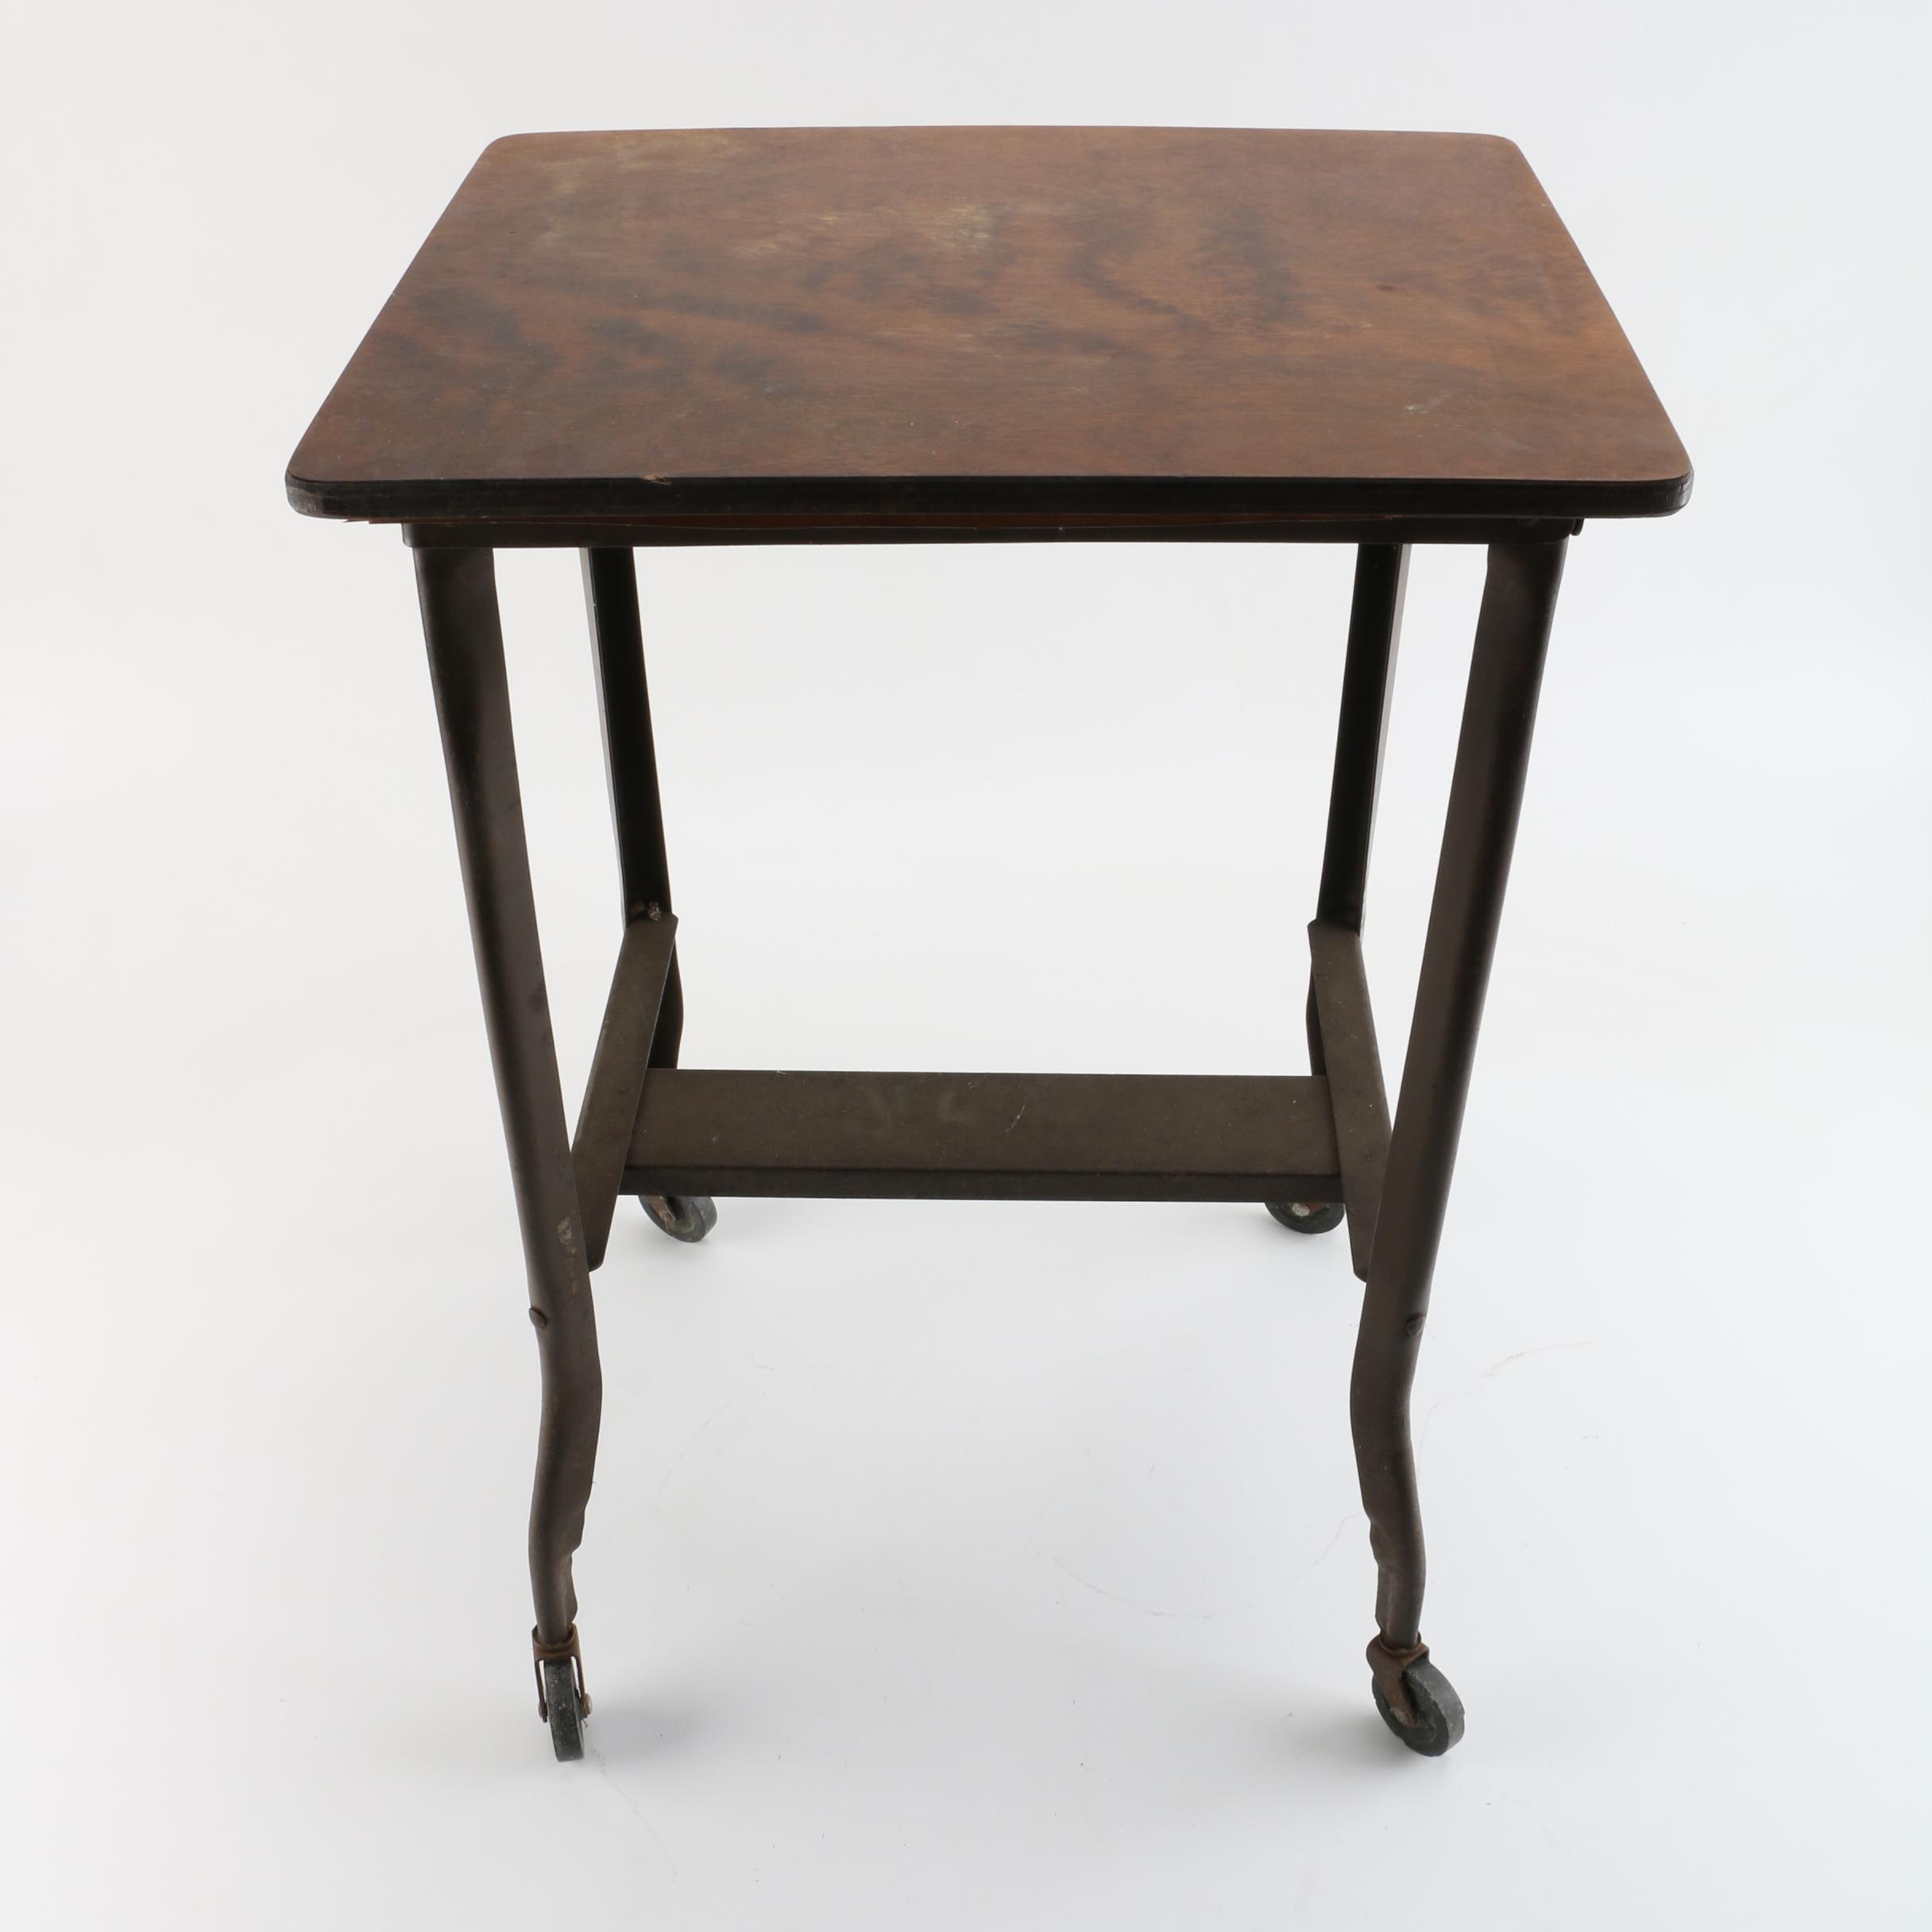 Mid-20th Century Industrial Typewriter Table with Casters